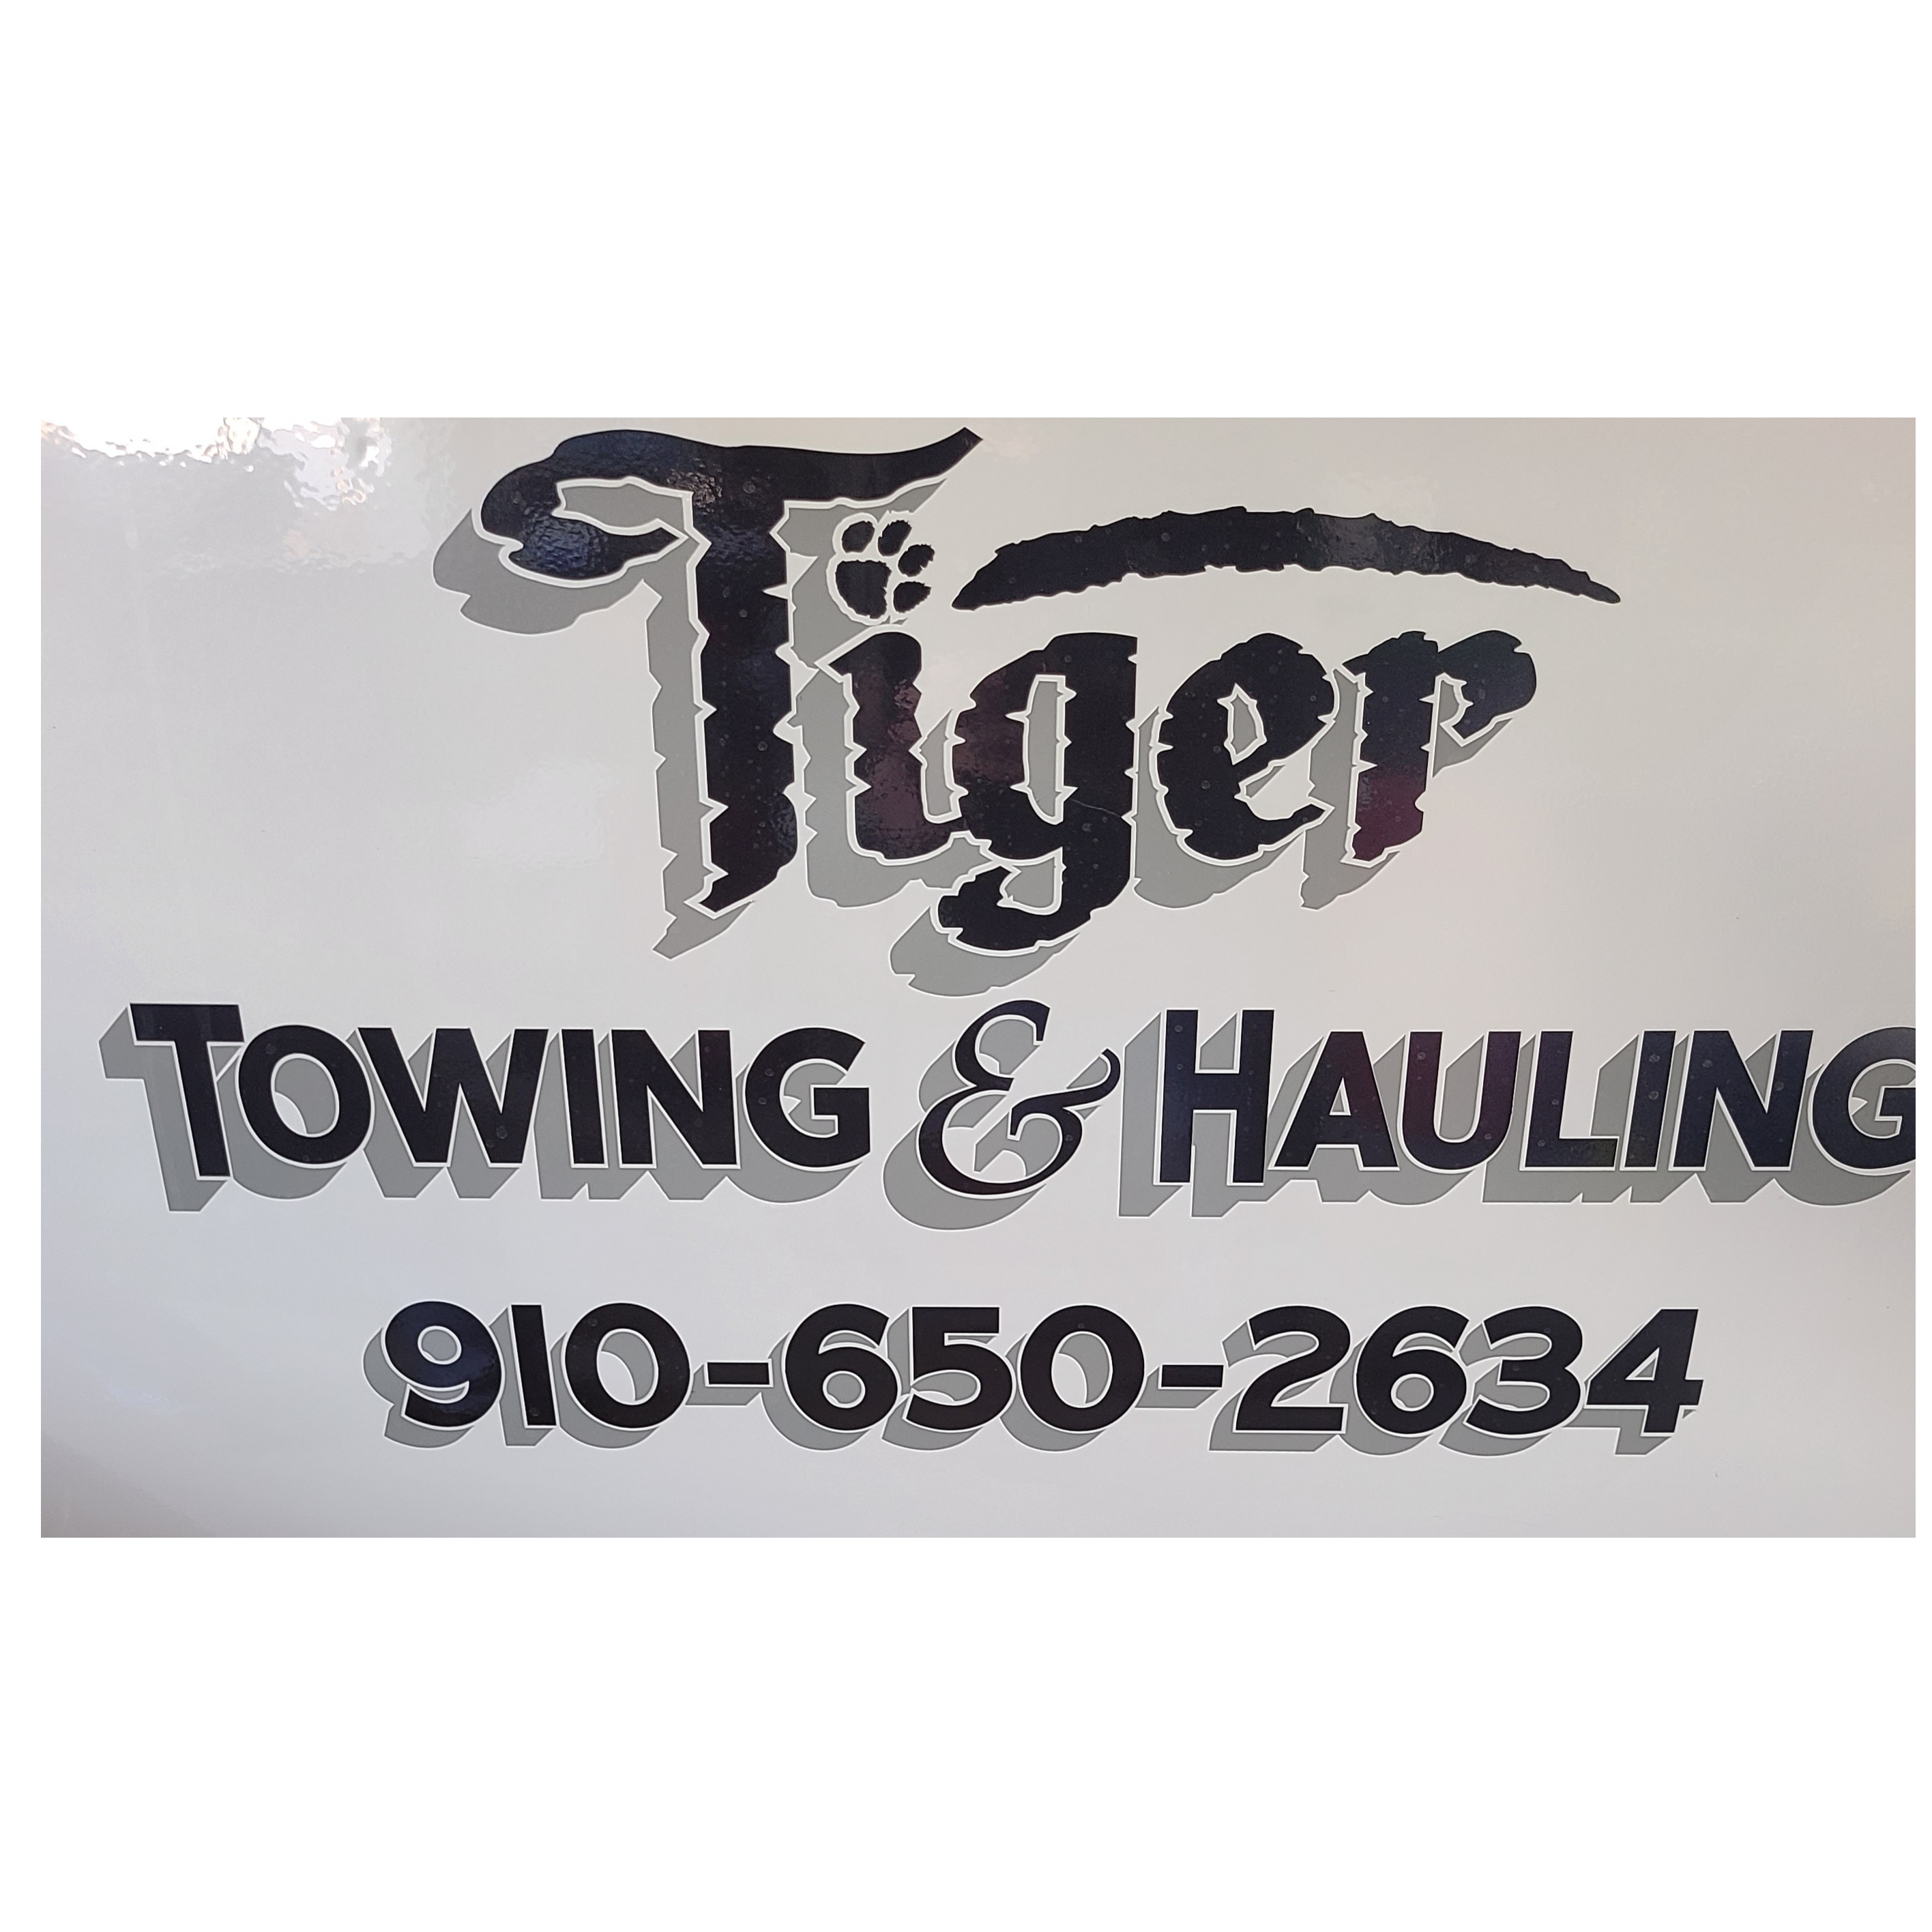 Tiger Towing & Hauling logo